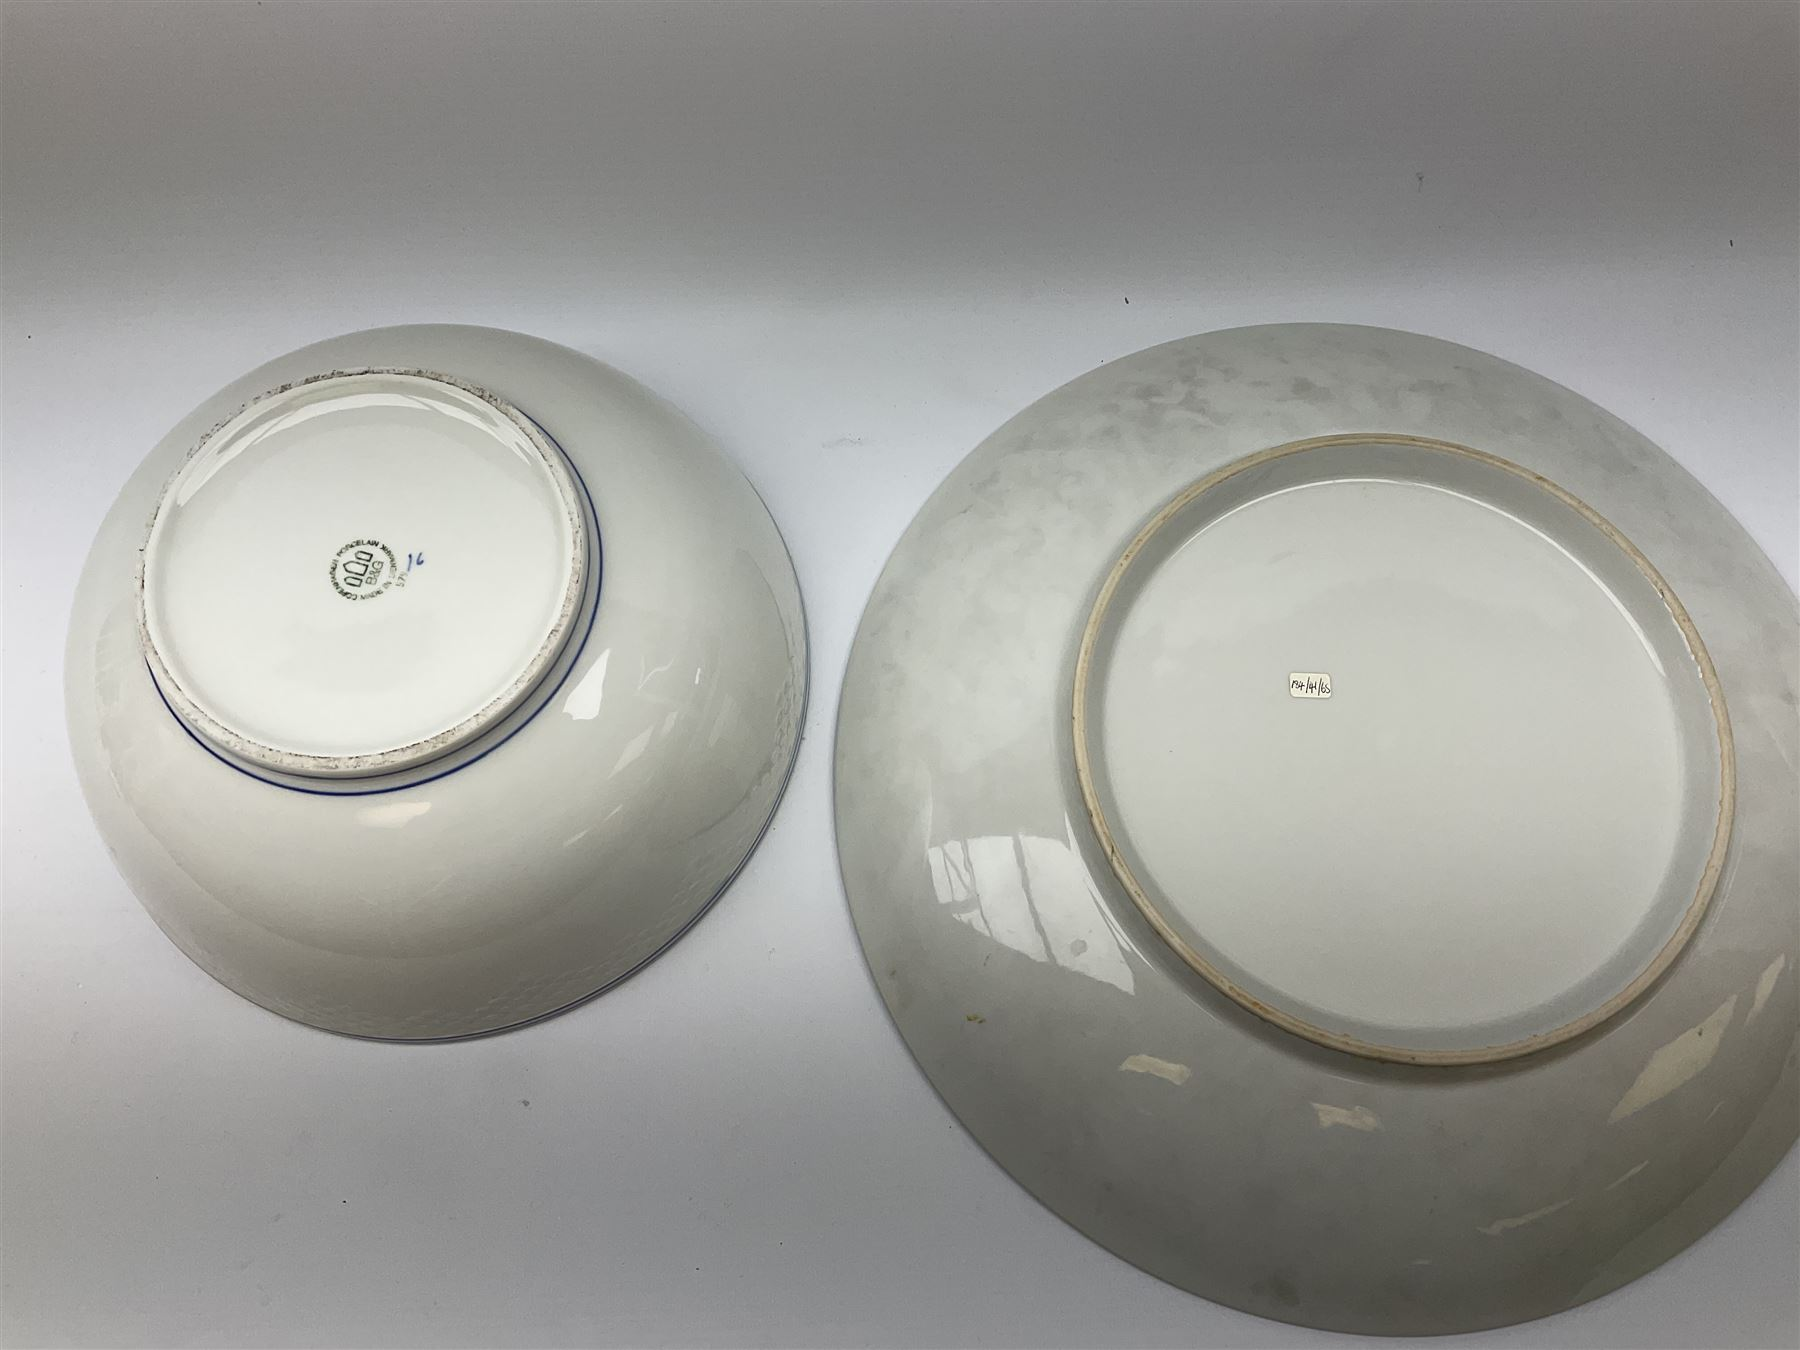 A Bing and Grondahl dish with moulded rim and blue swag decoration to the interior - Image 4 of 6